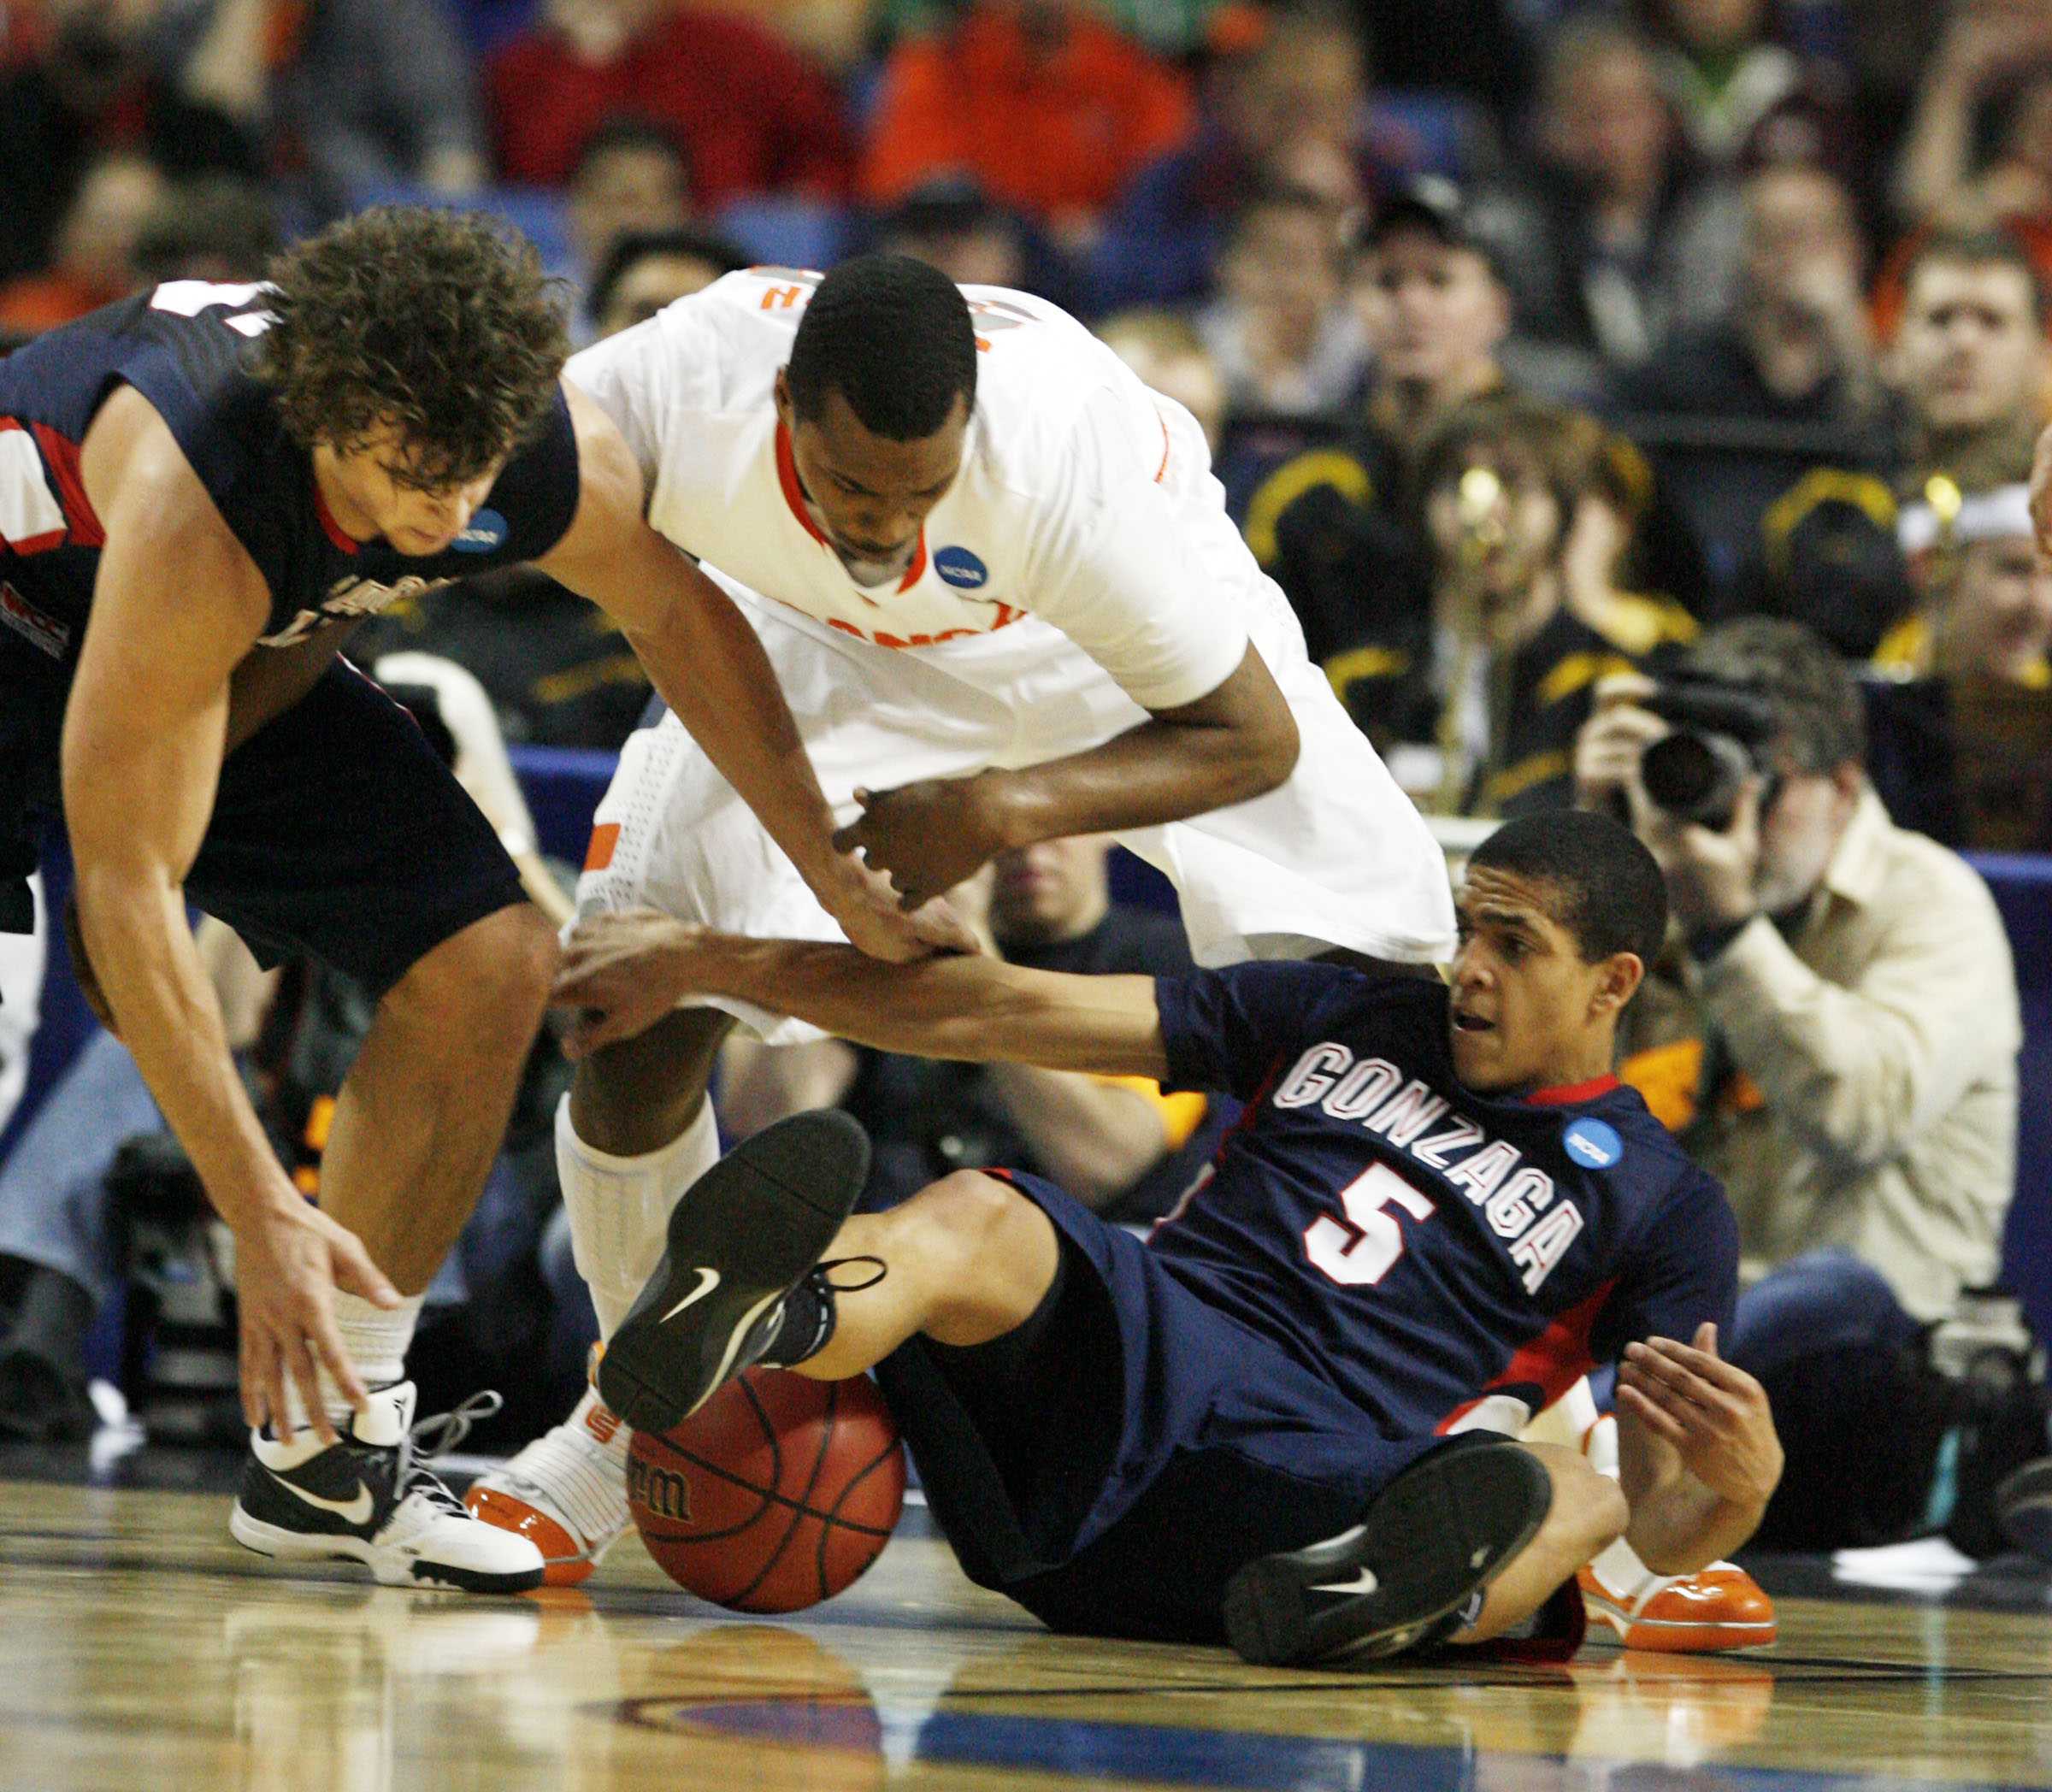 Syracuse forward Kris Joseph (32) dives for the ball along with Gonzaga guard G.J. Vilarino (5) and  Matt Bouldin. (James P. McCoy/Buffalo News)